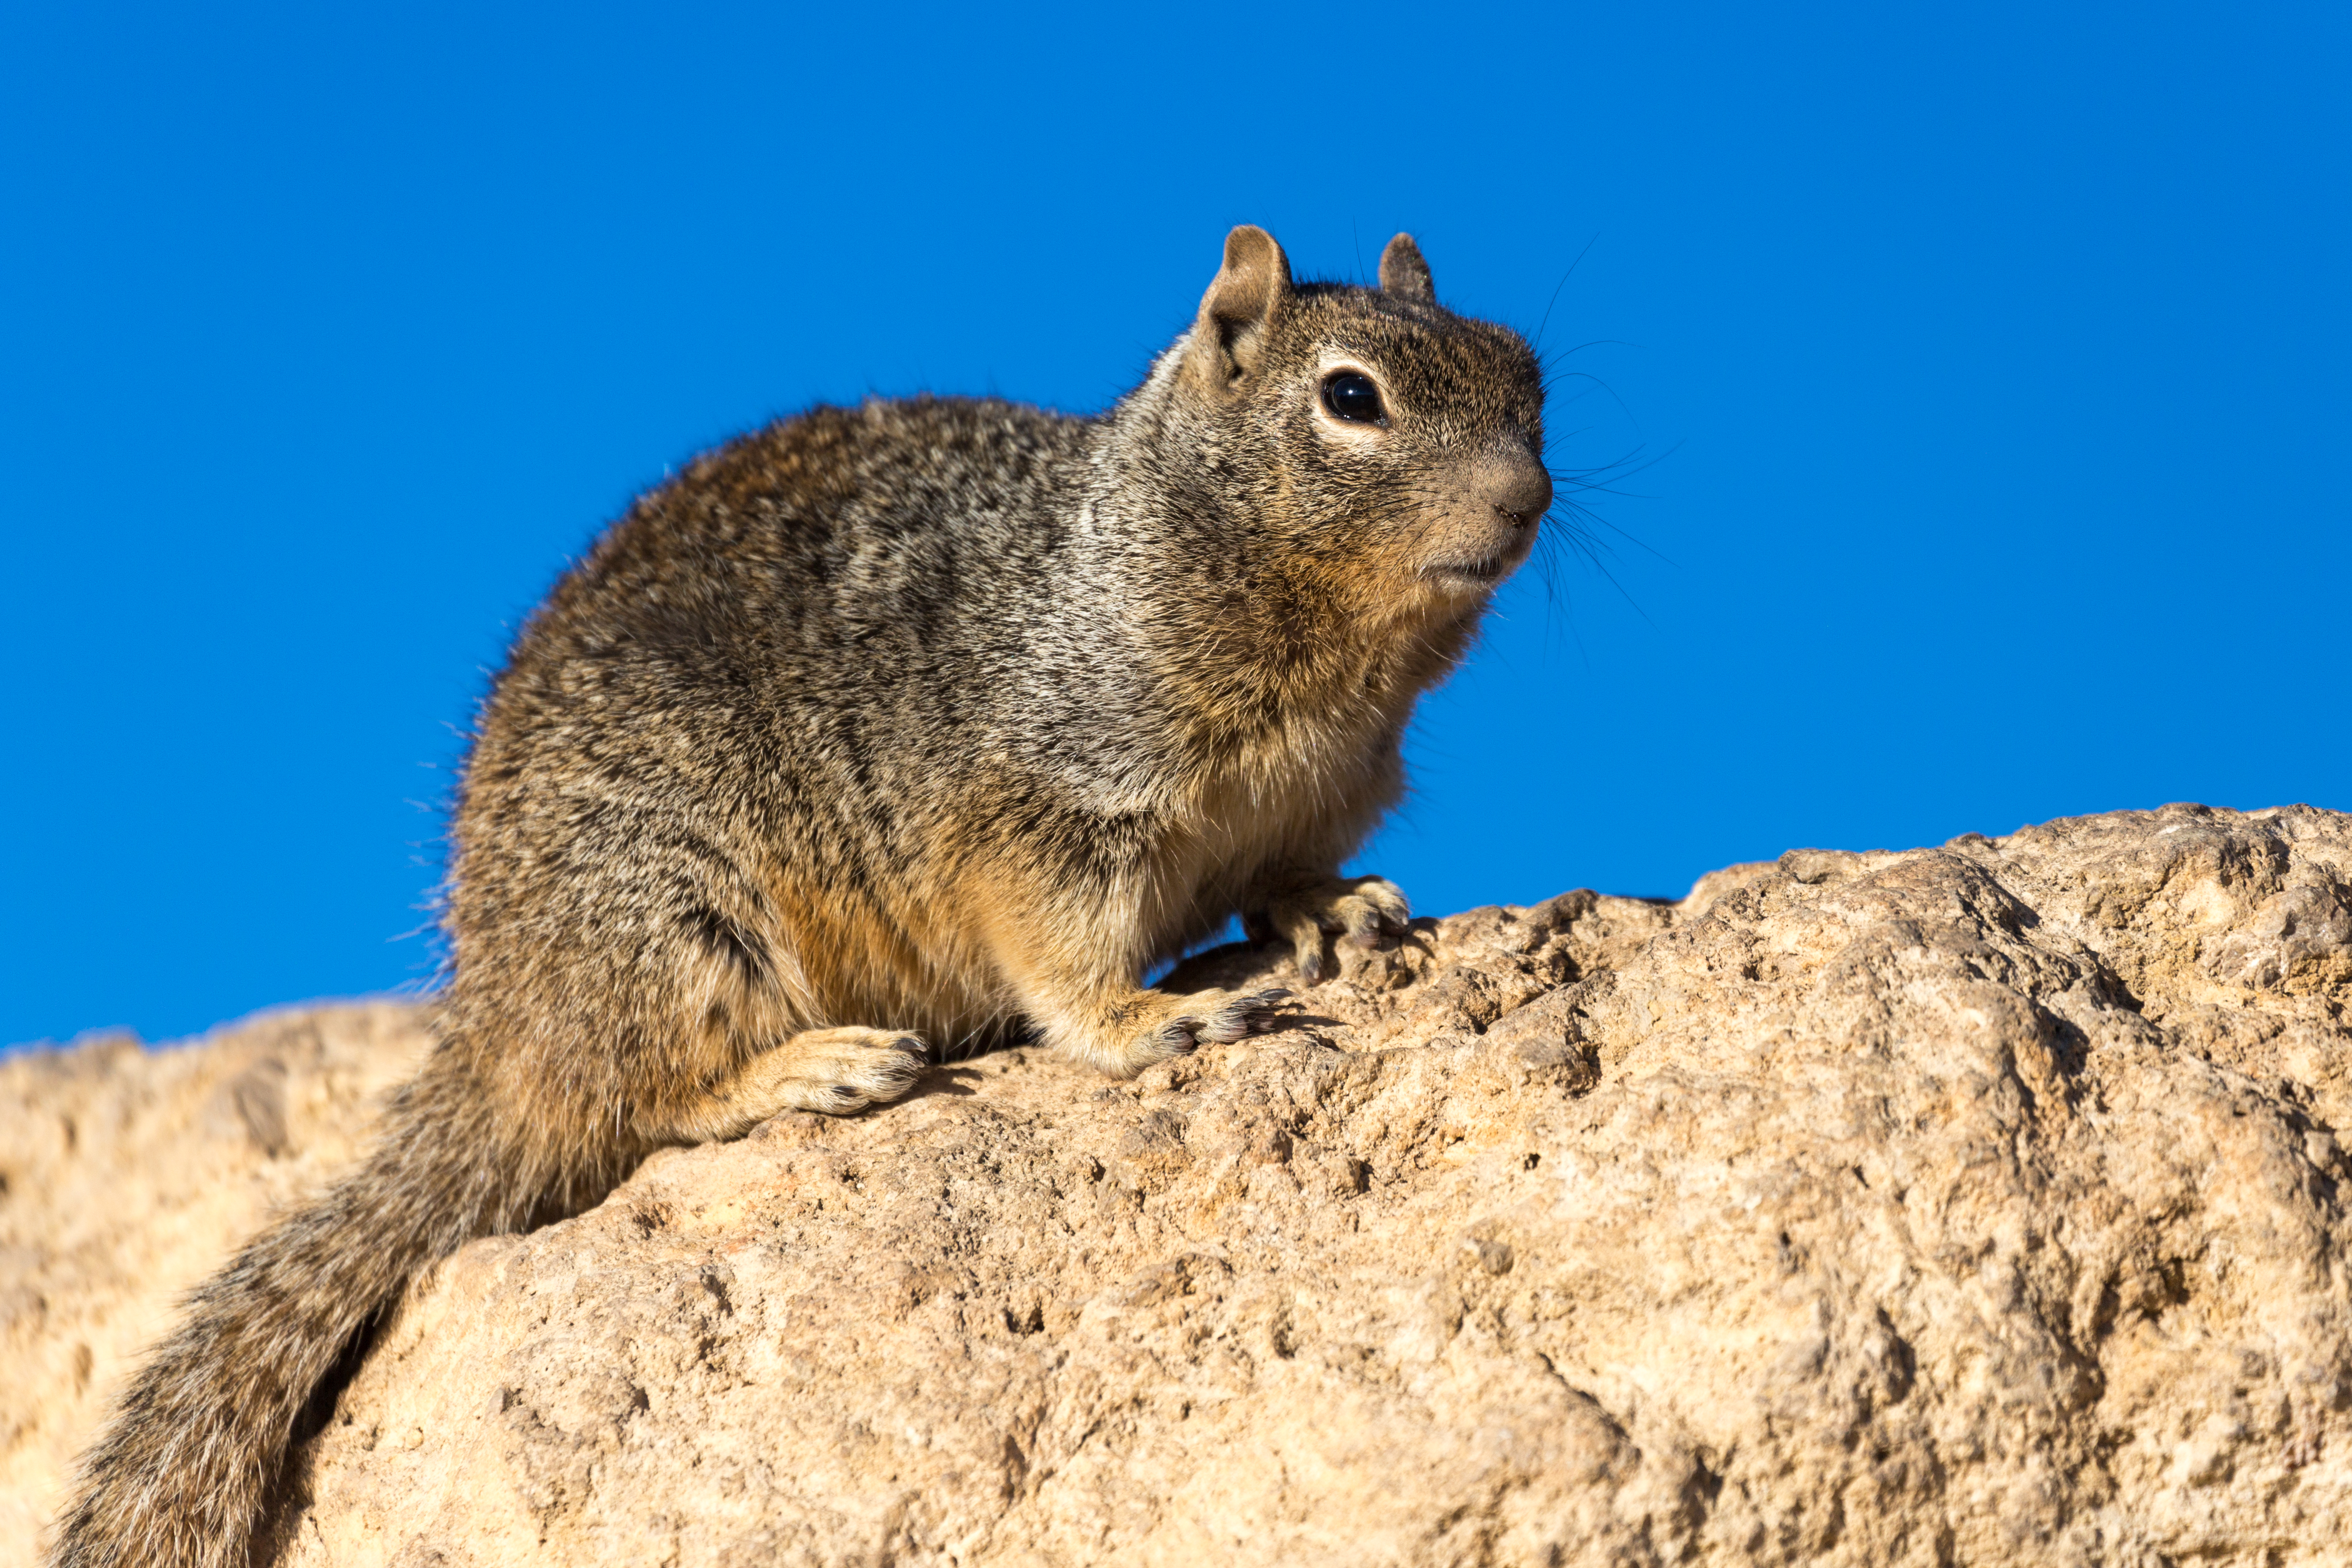 Squirrel, Grand Canyon, Arizona, USA